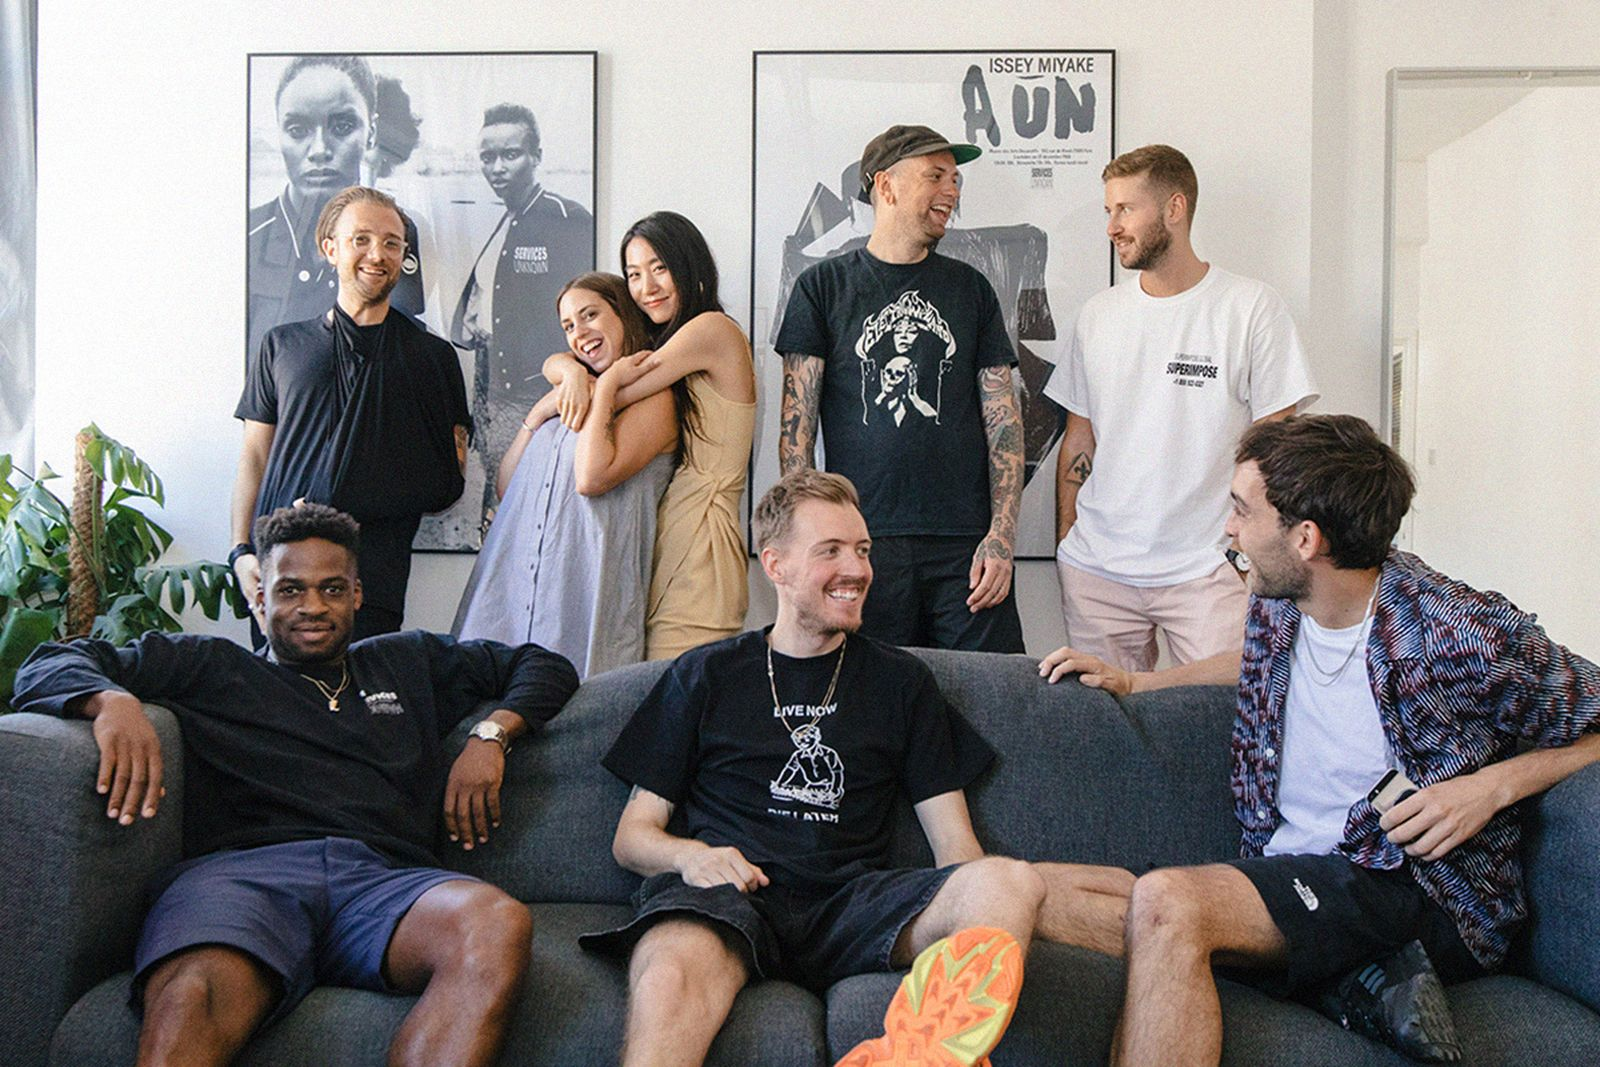 meet people behind coolest ad agency world main Adidas Superimpose burberry